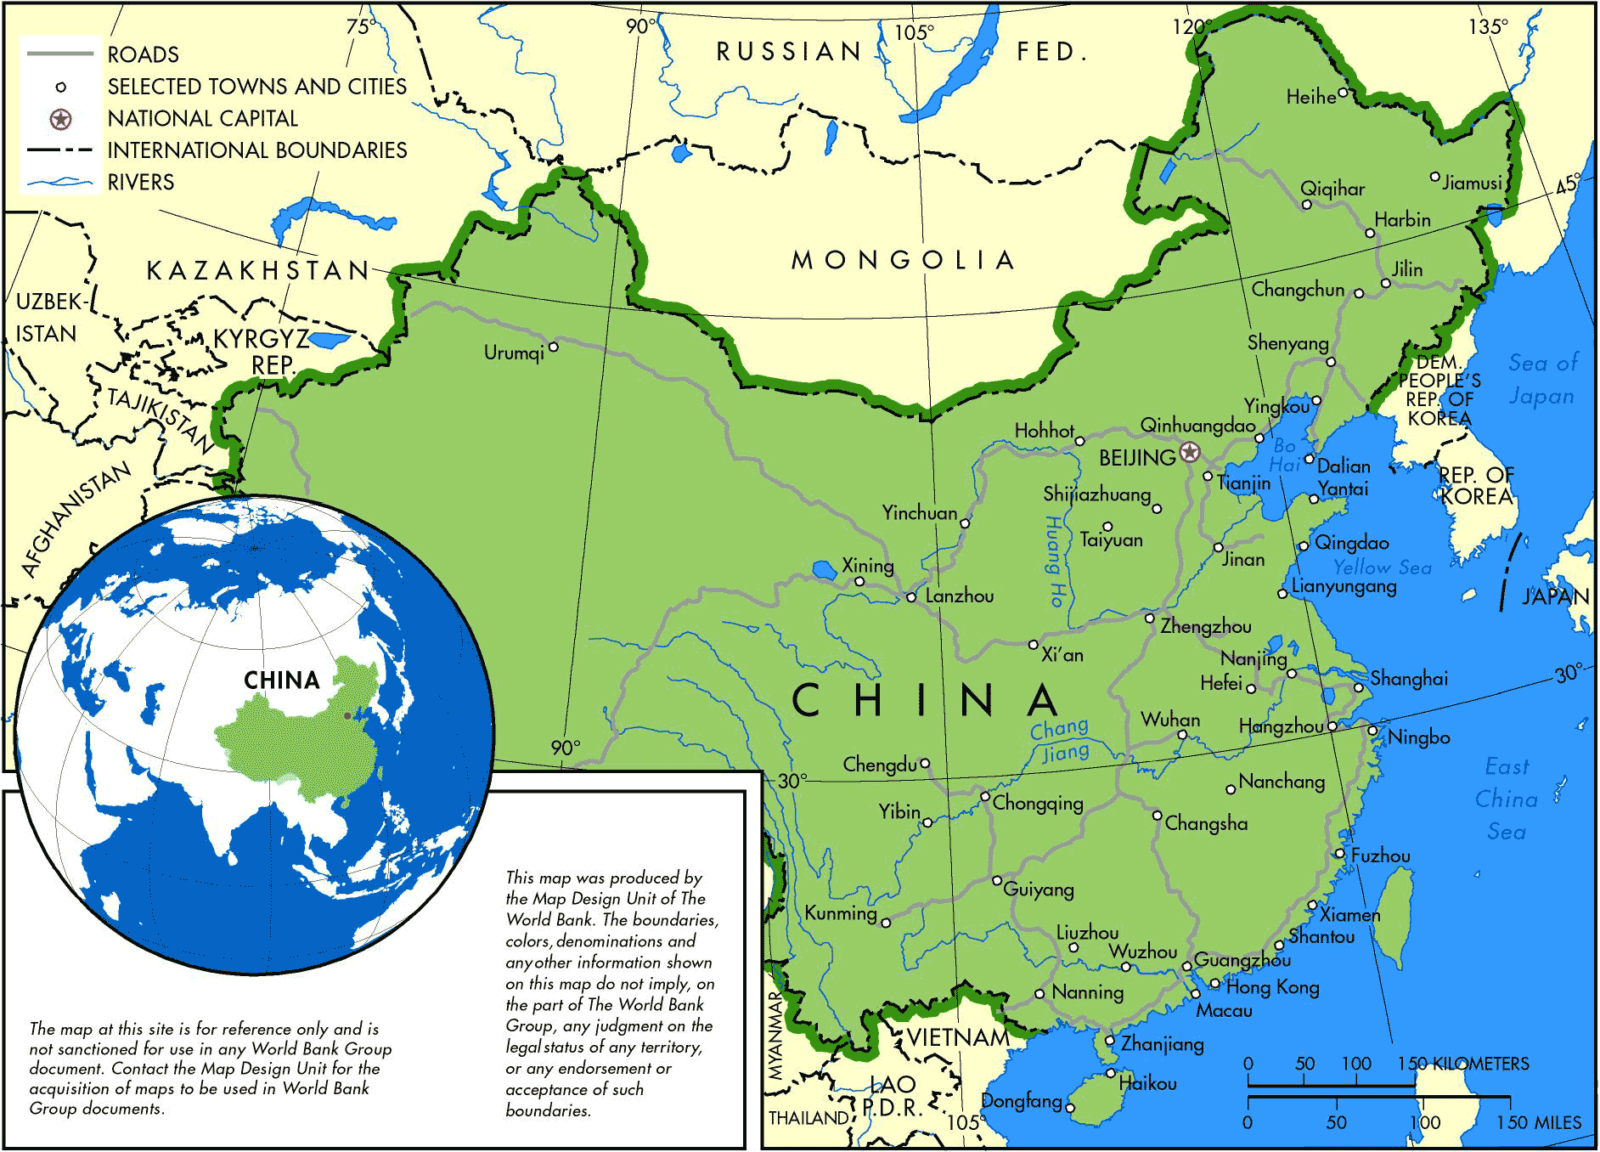 Map of China: Major Chinese Cities